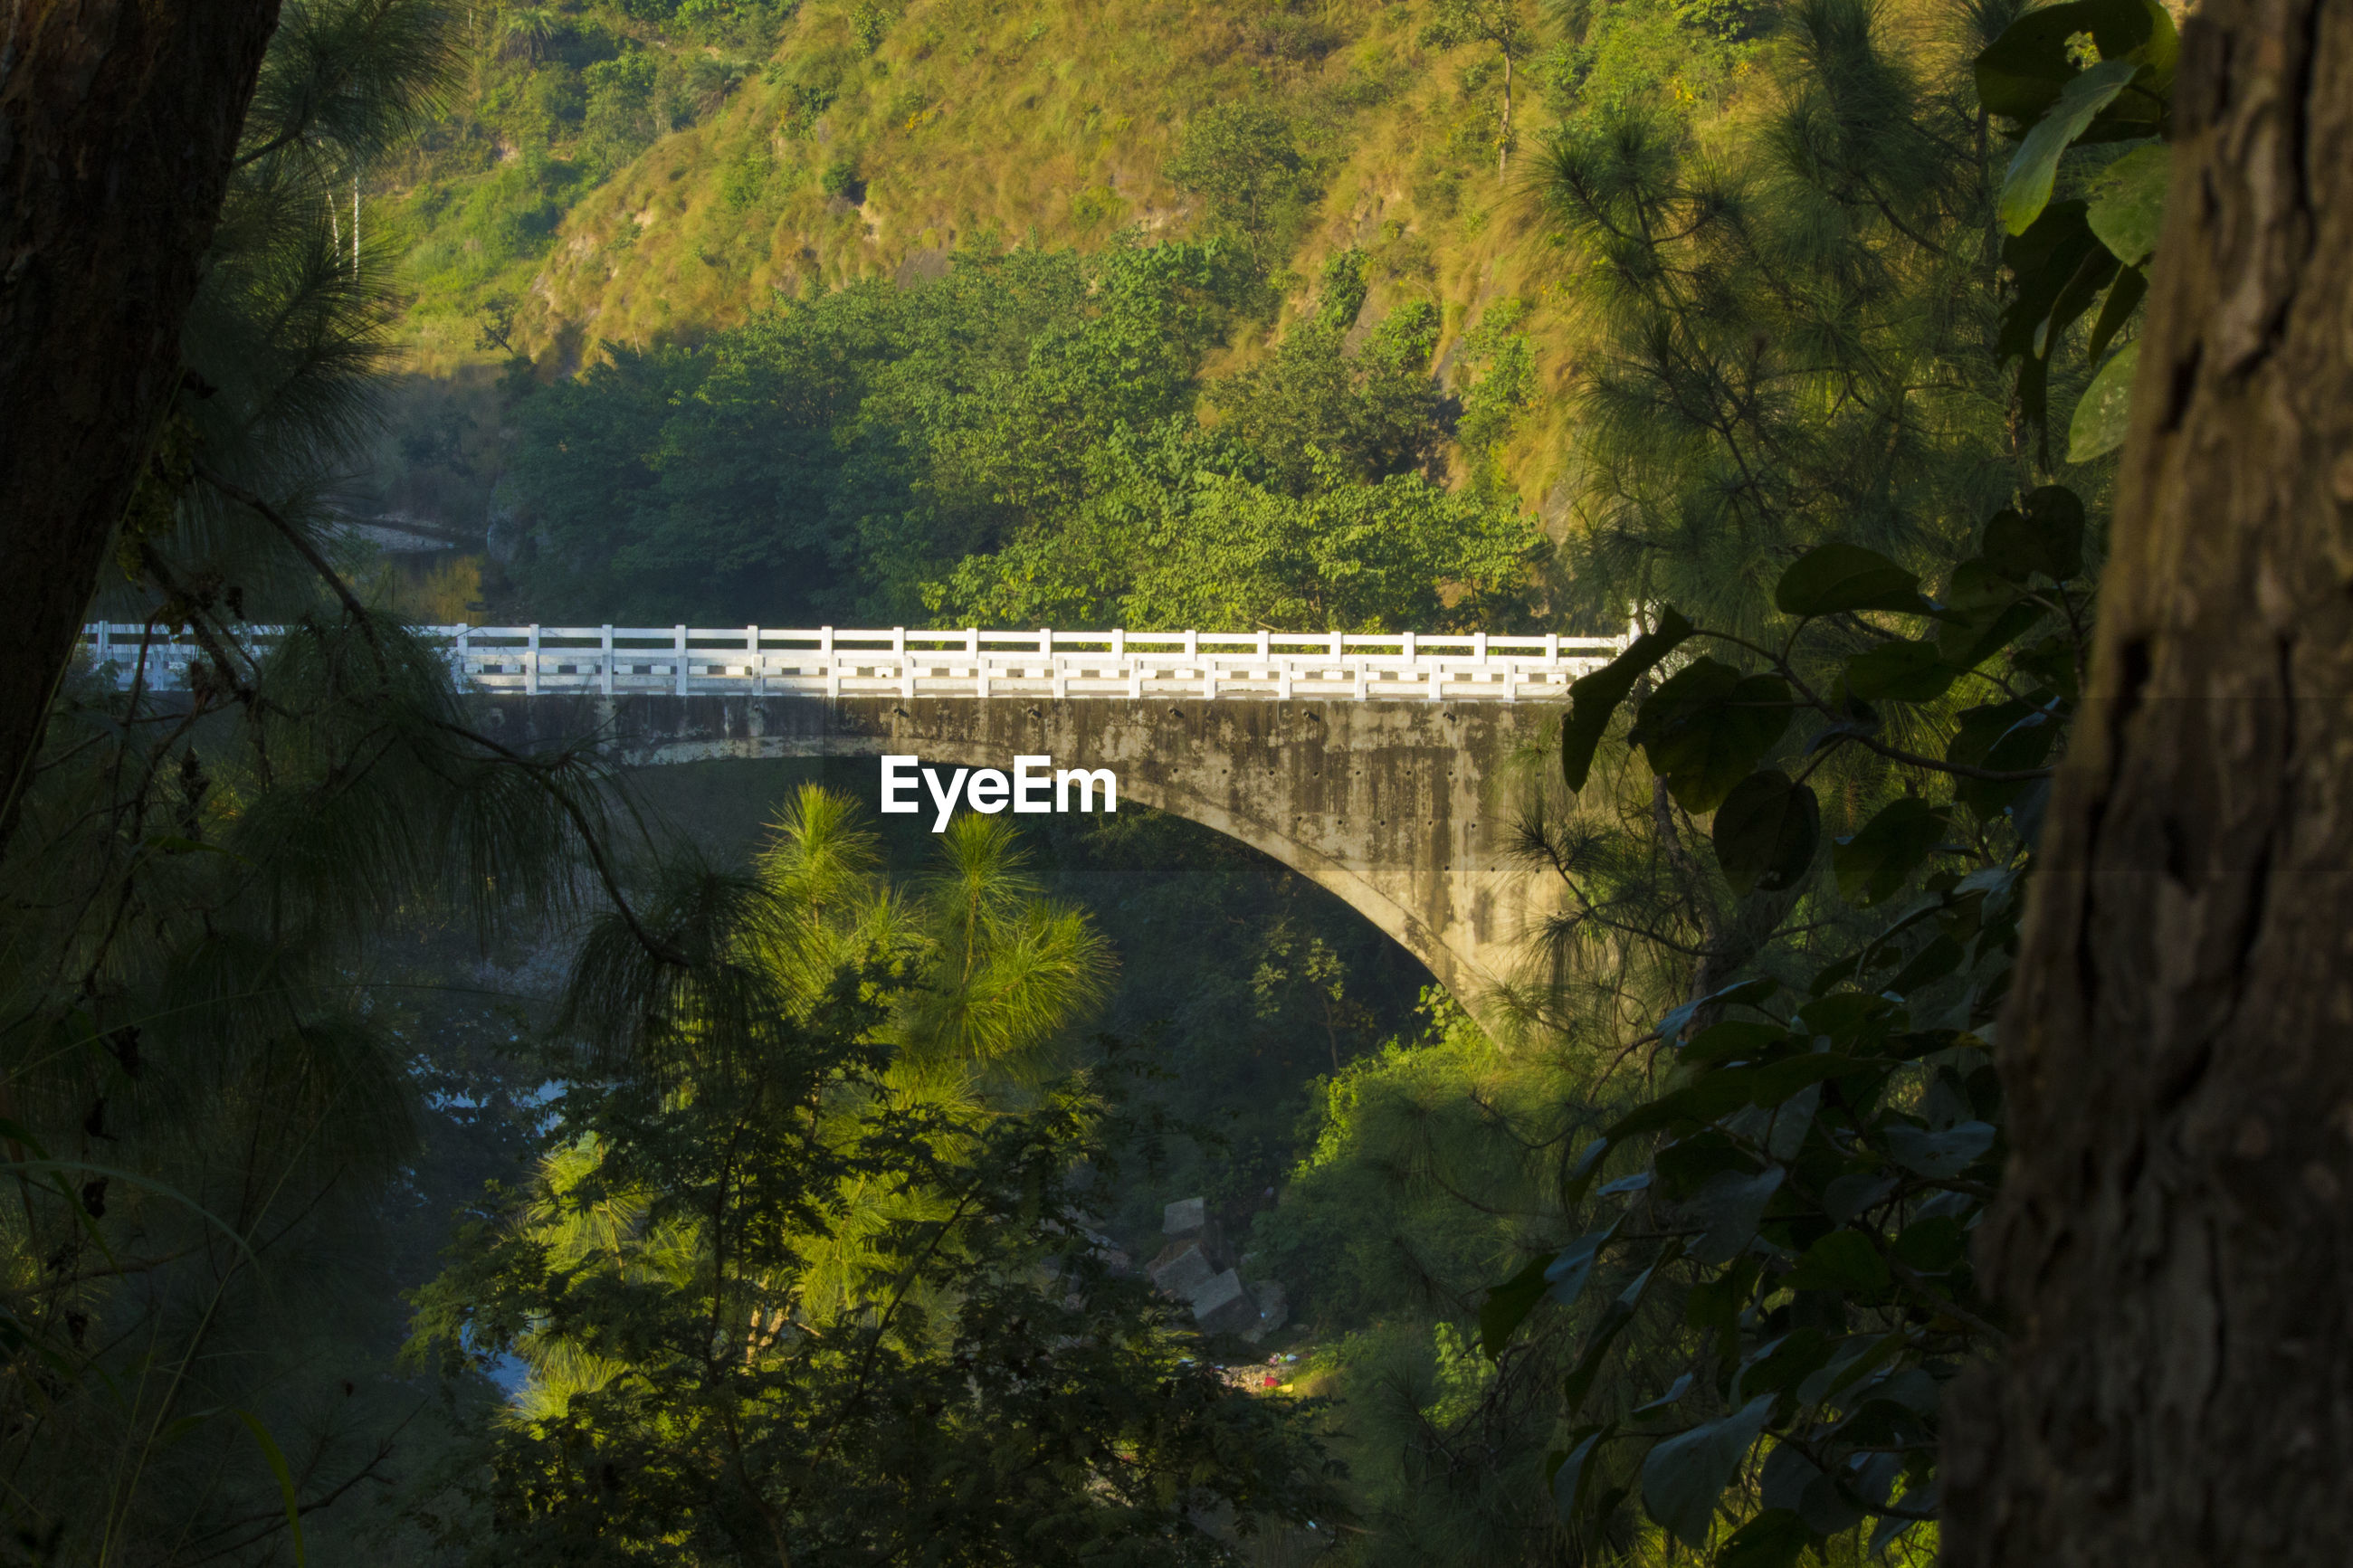 BRIDGE OVER RIVER BY TREES